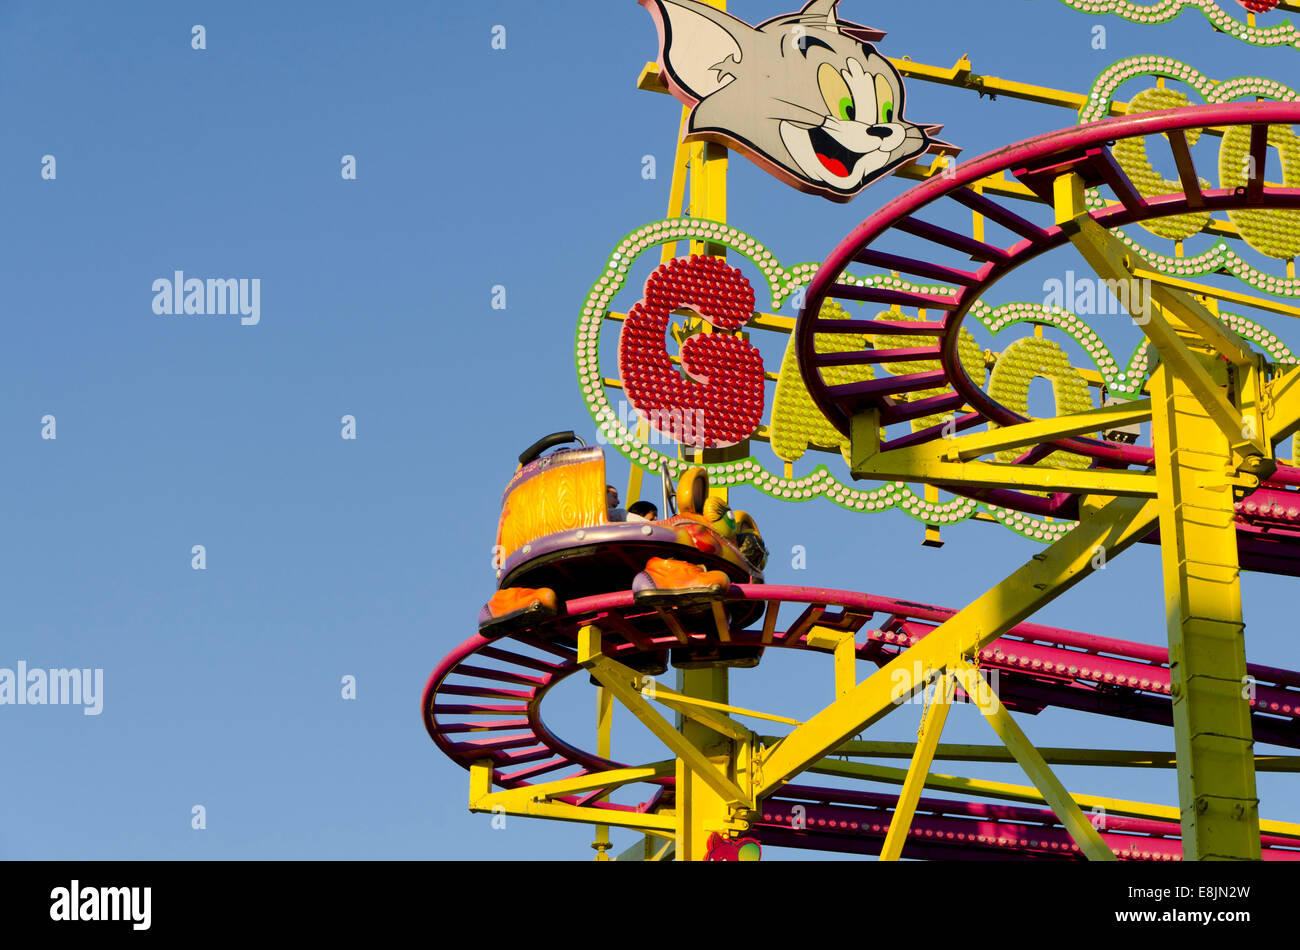 Part of an old Roller coaster car ride on annual fair. funfair ...